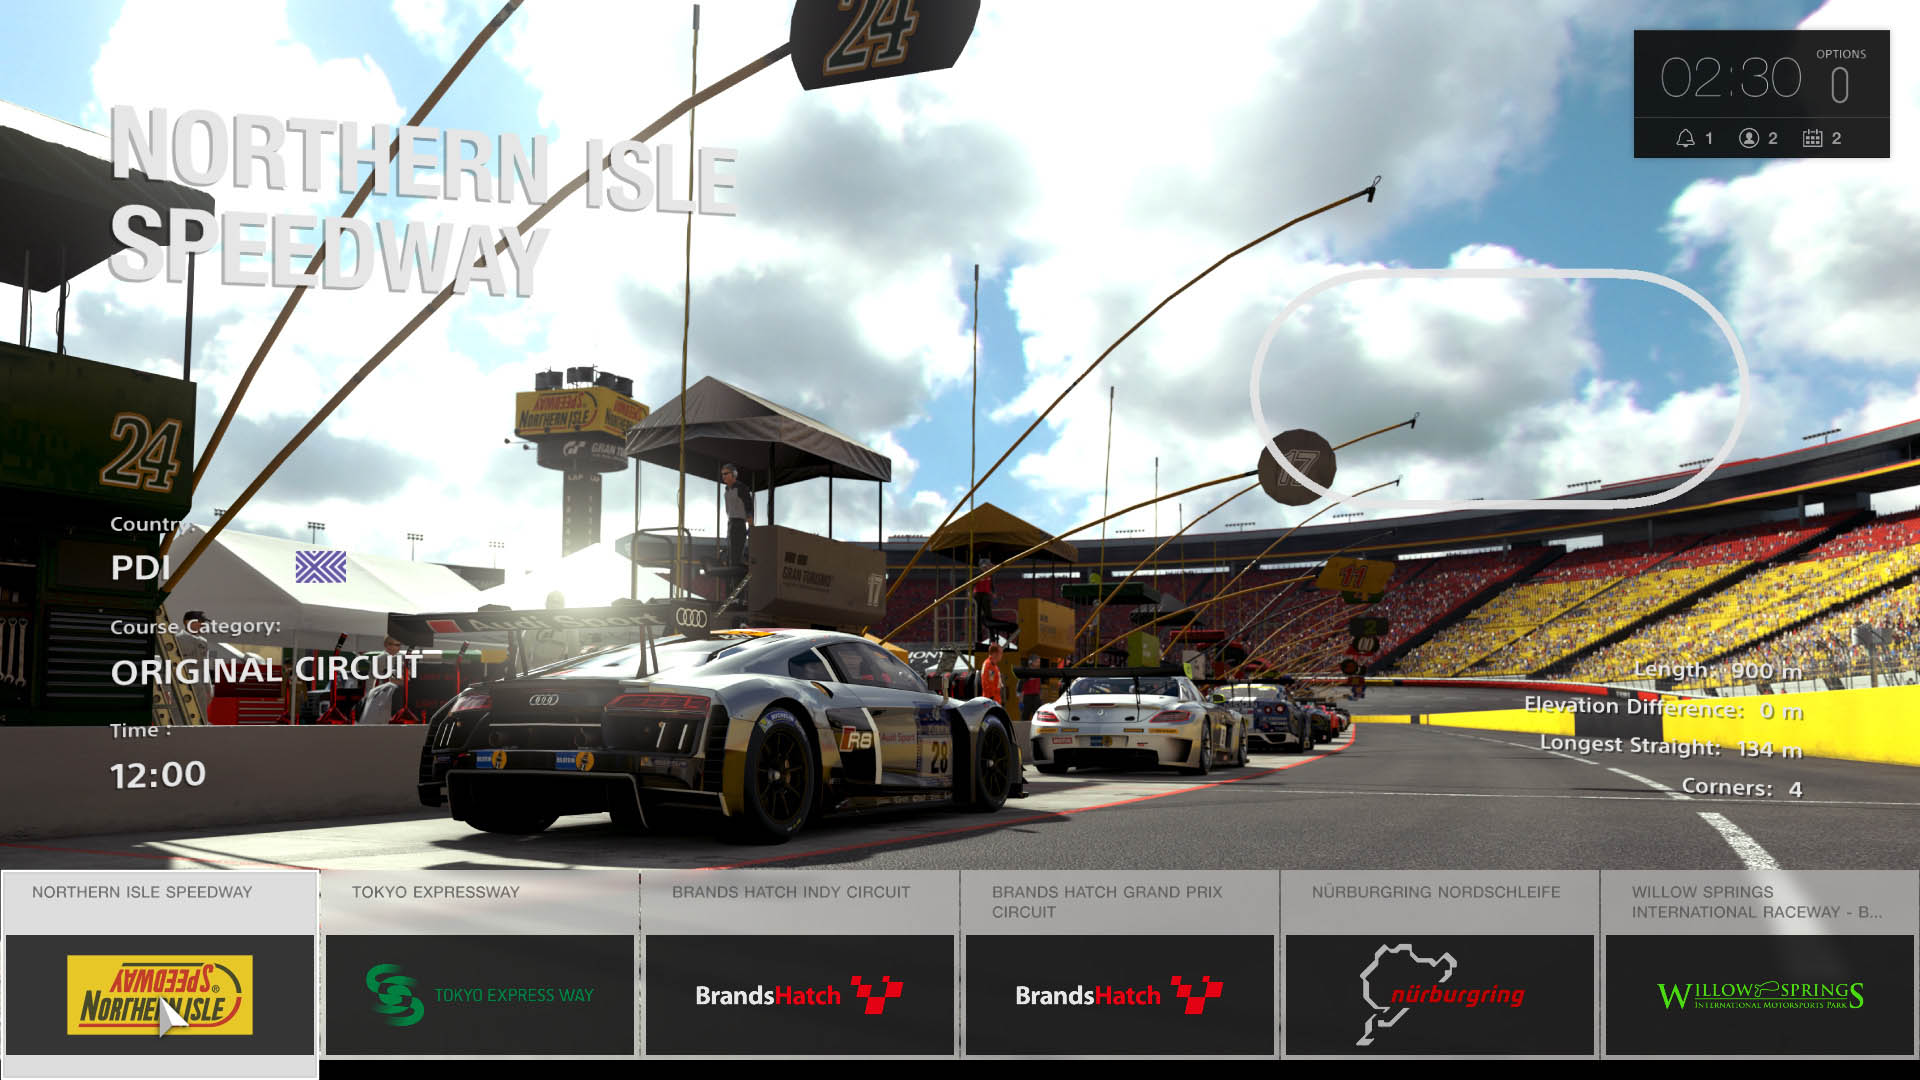 PREVIEW_SCREENSHOT3_116713 Fascinating Gran Turismo Psp Bugatti Veyron Price Cars Trend